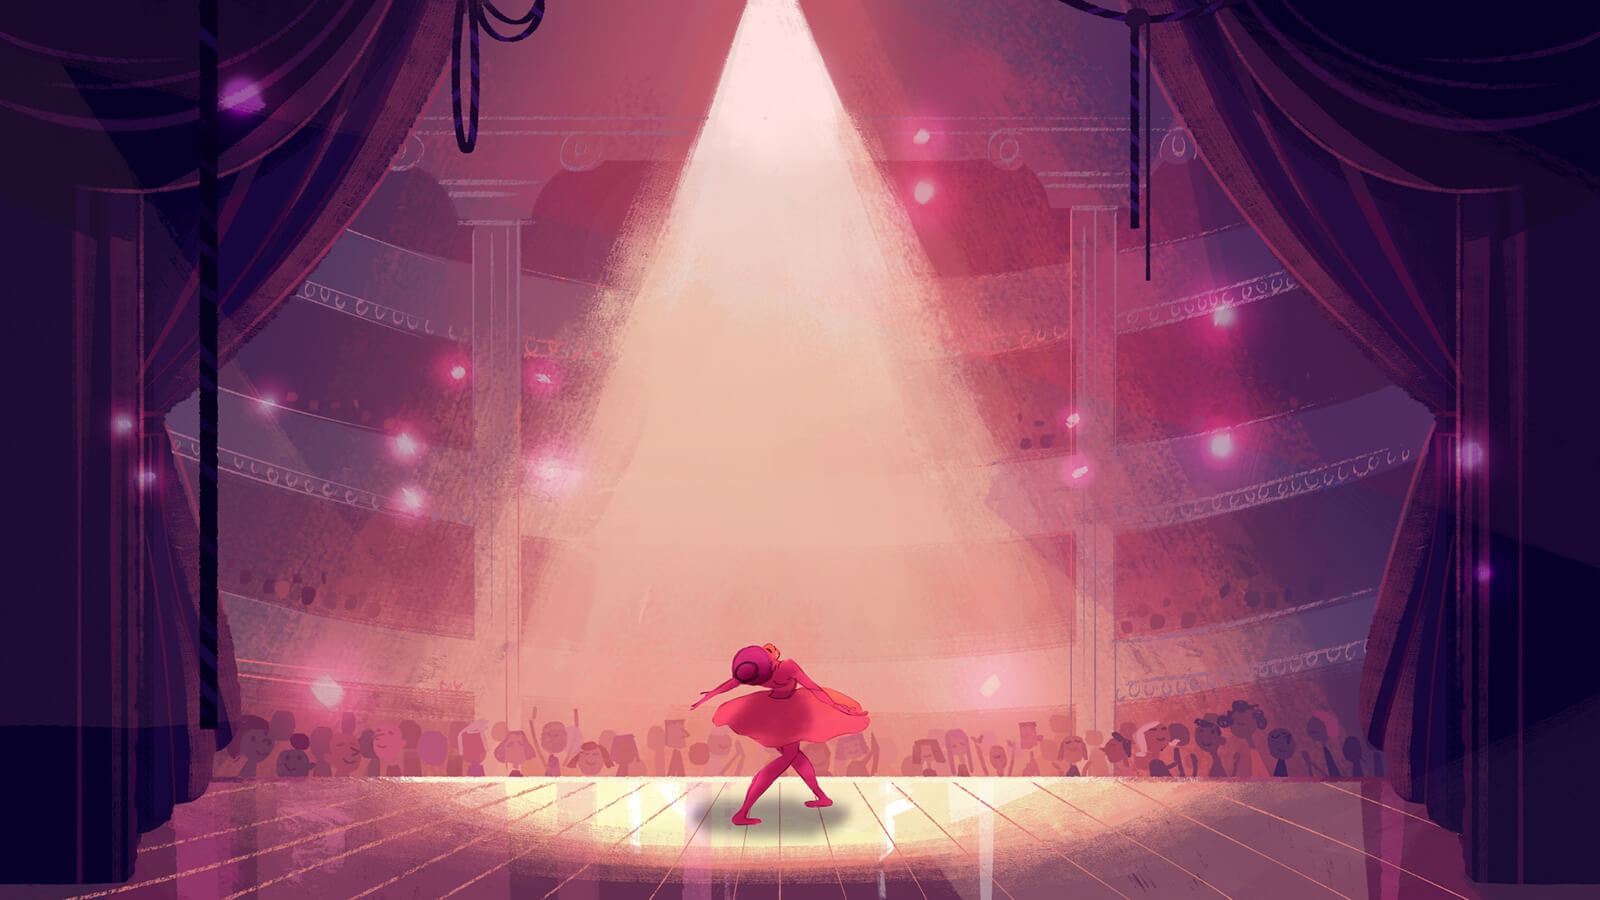 A ballerina, bathed in pink stage light, dances in front of a packed audience in a large, ornate theater.